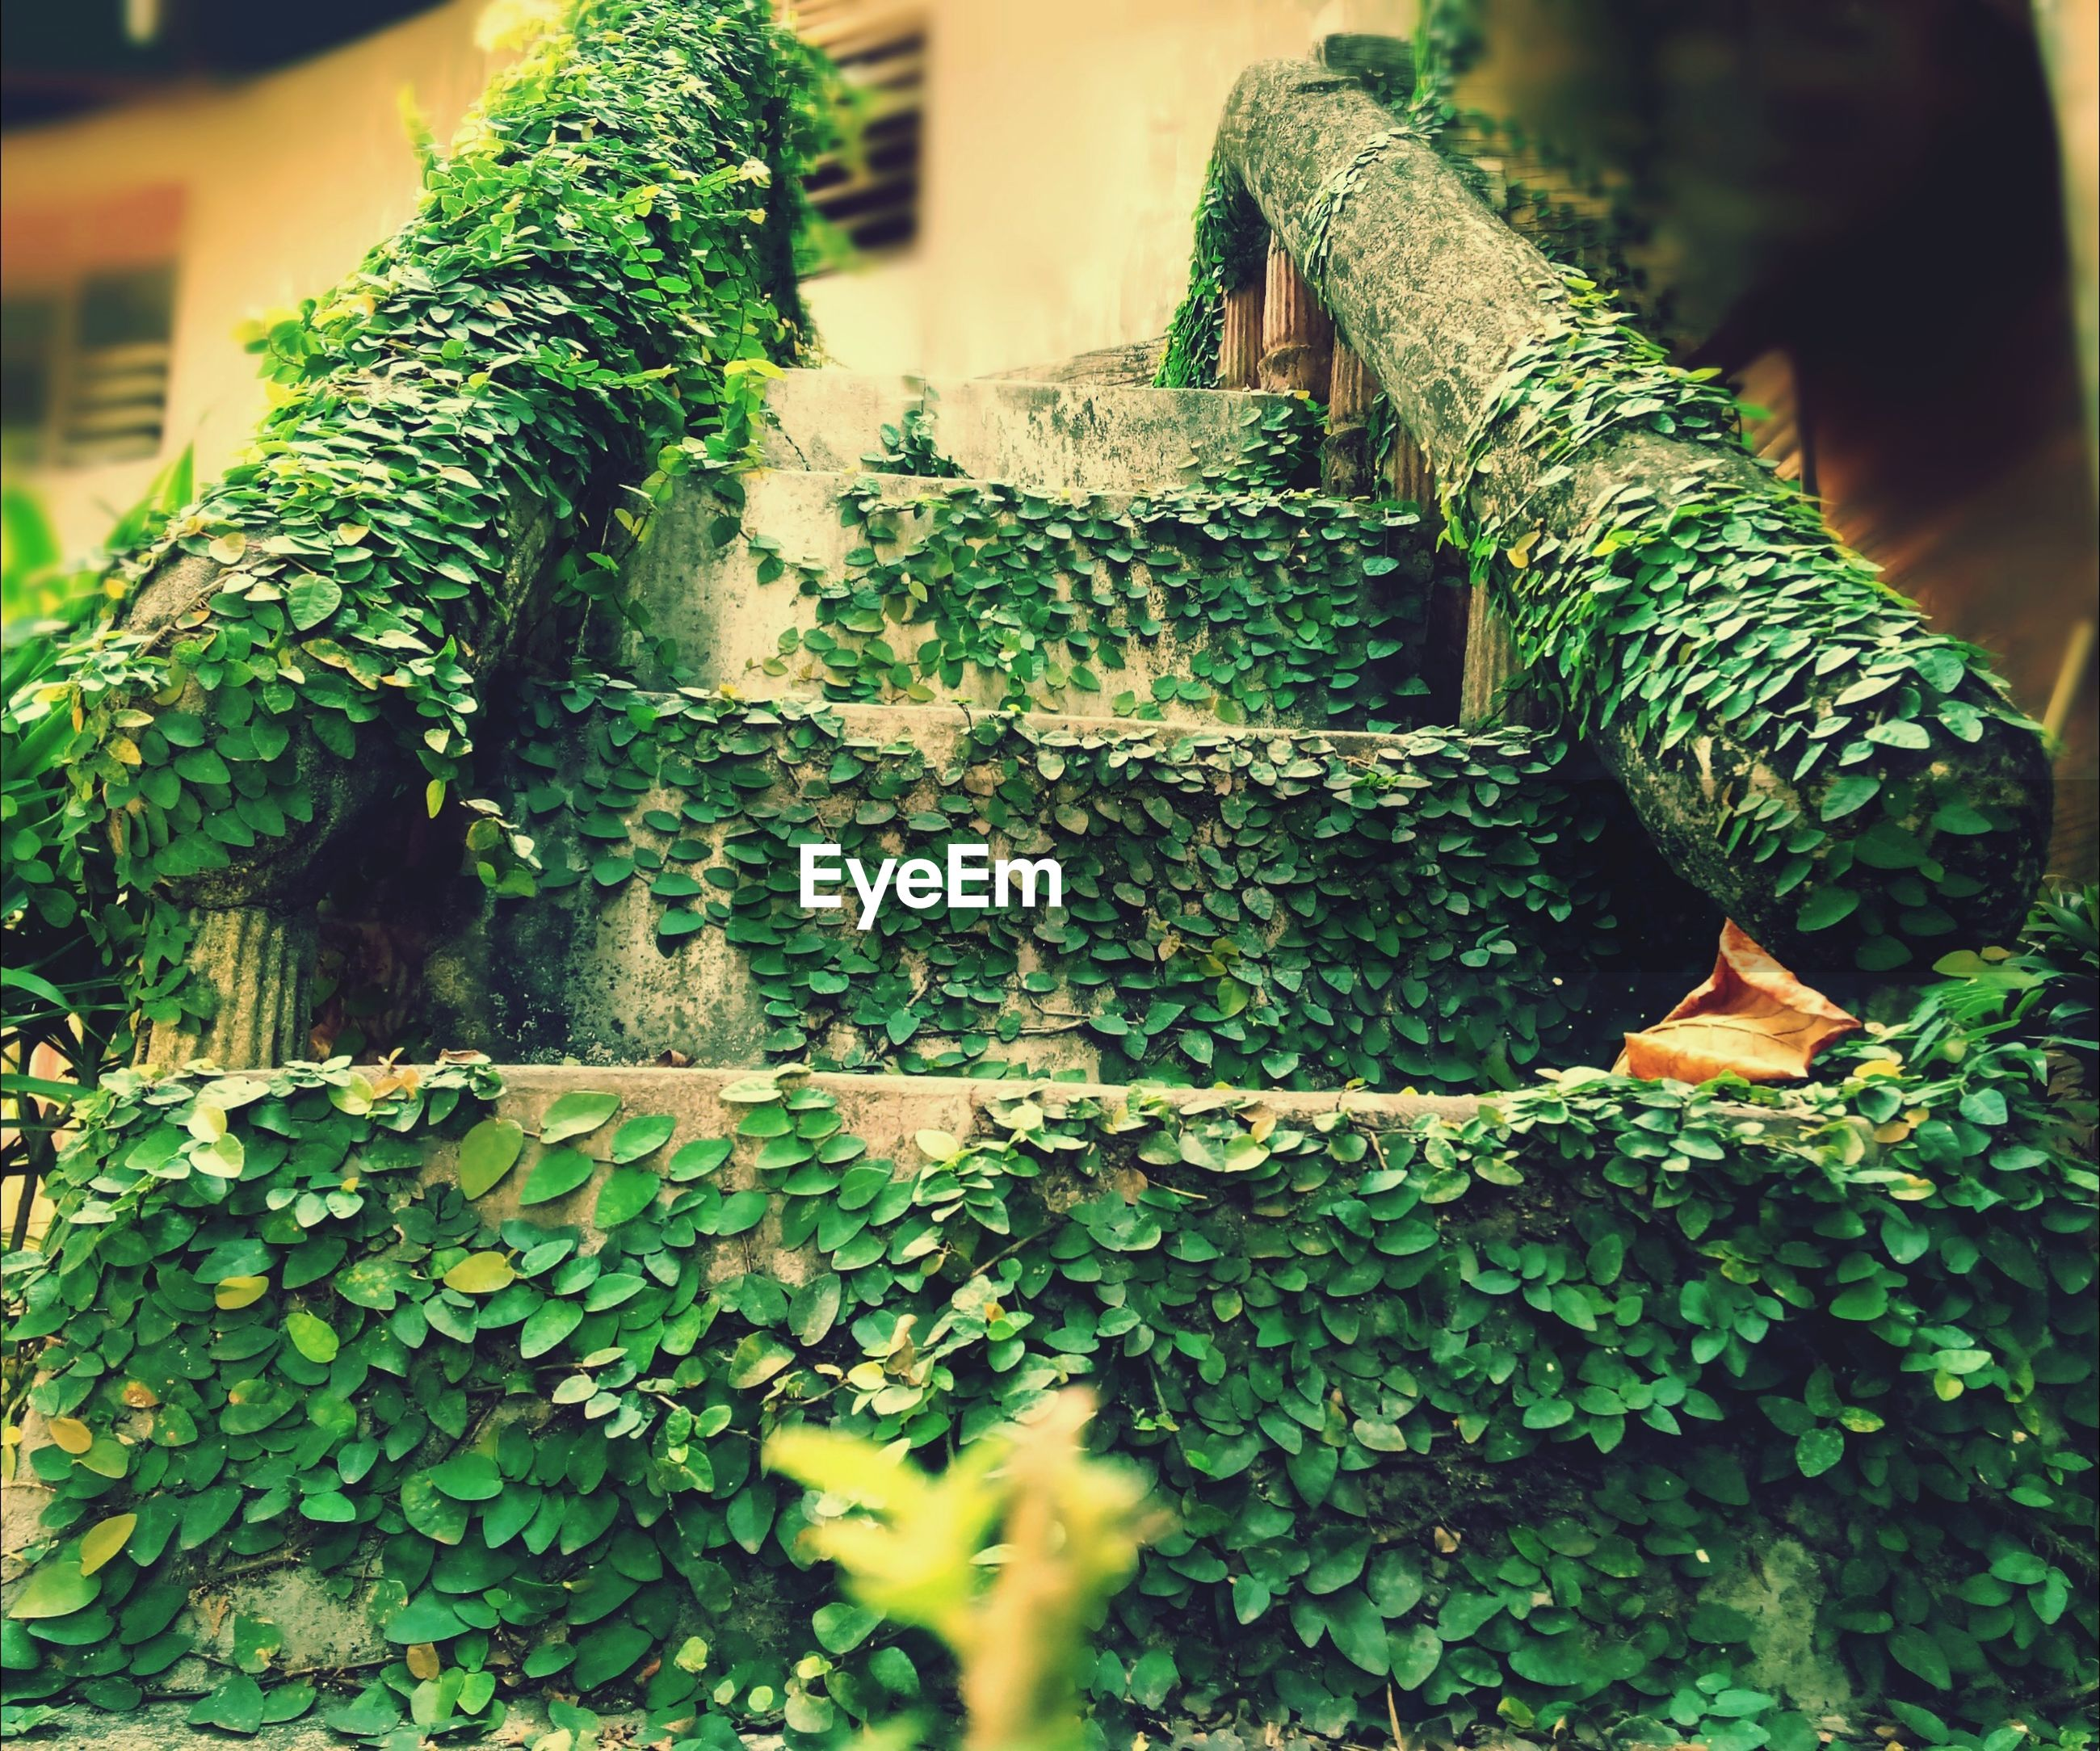 green color, plant, growth, moss, built structure, ivy, tree, architecture, building exterior, outdoors, leaf, day, close-up, nature, focus on foreground, selective focus, pattern, wall - building feature